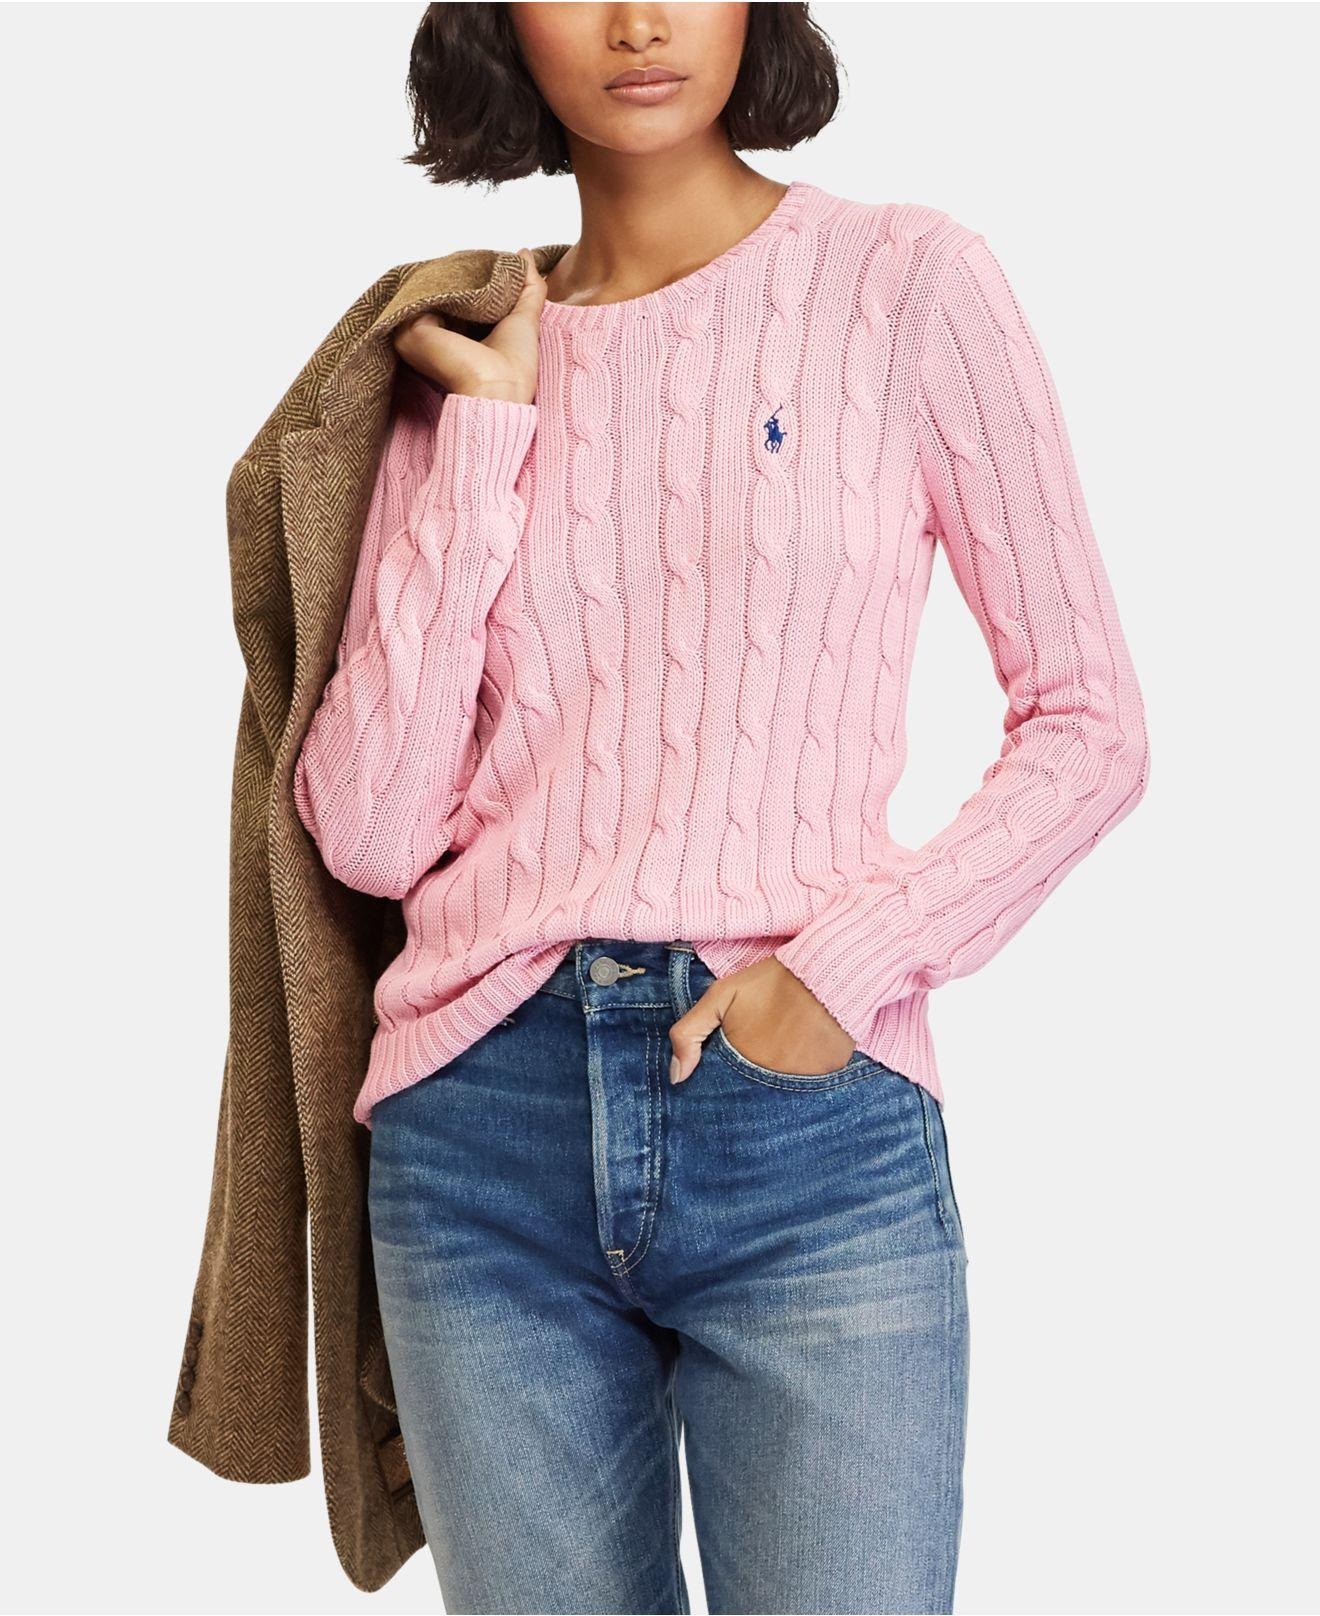 a37a670b6b1e Lyst - Polo Ralph Lauren Cable-knit Cotton Sweater in Pink - Save 40%